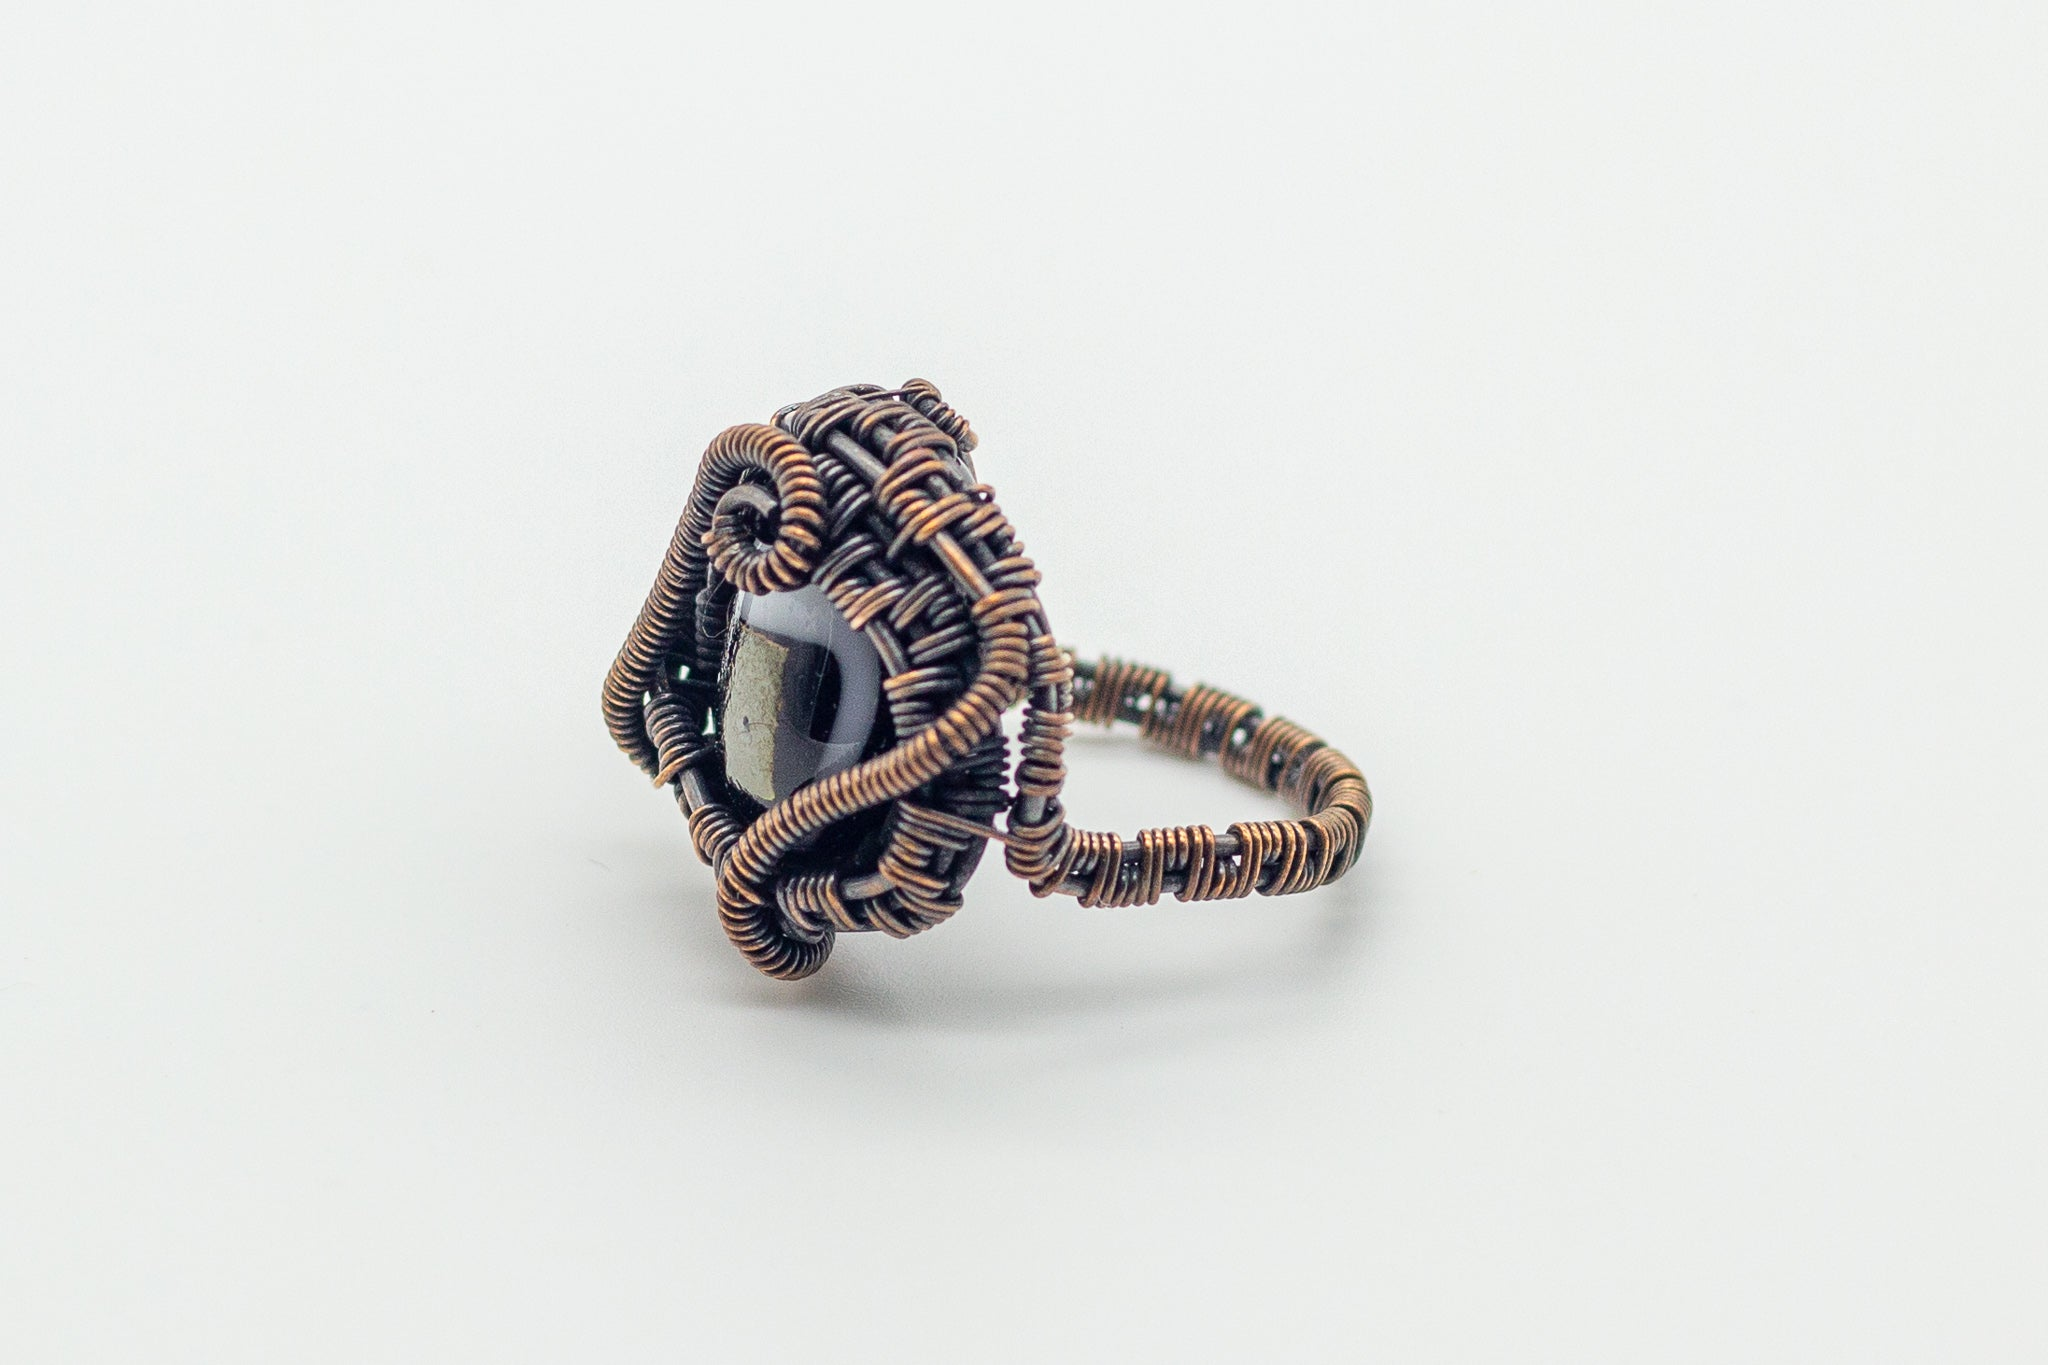 black-gold-dichroic-fused-glass-copper-wire-wrapped-ring-nymph-in-the-woods-jewelry